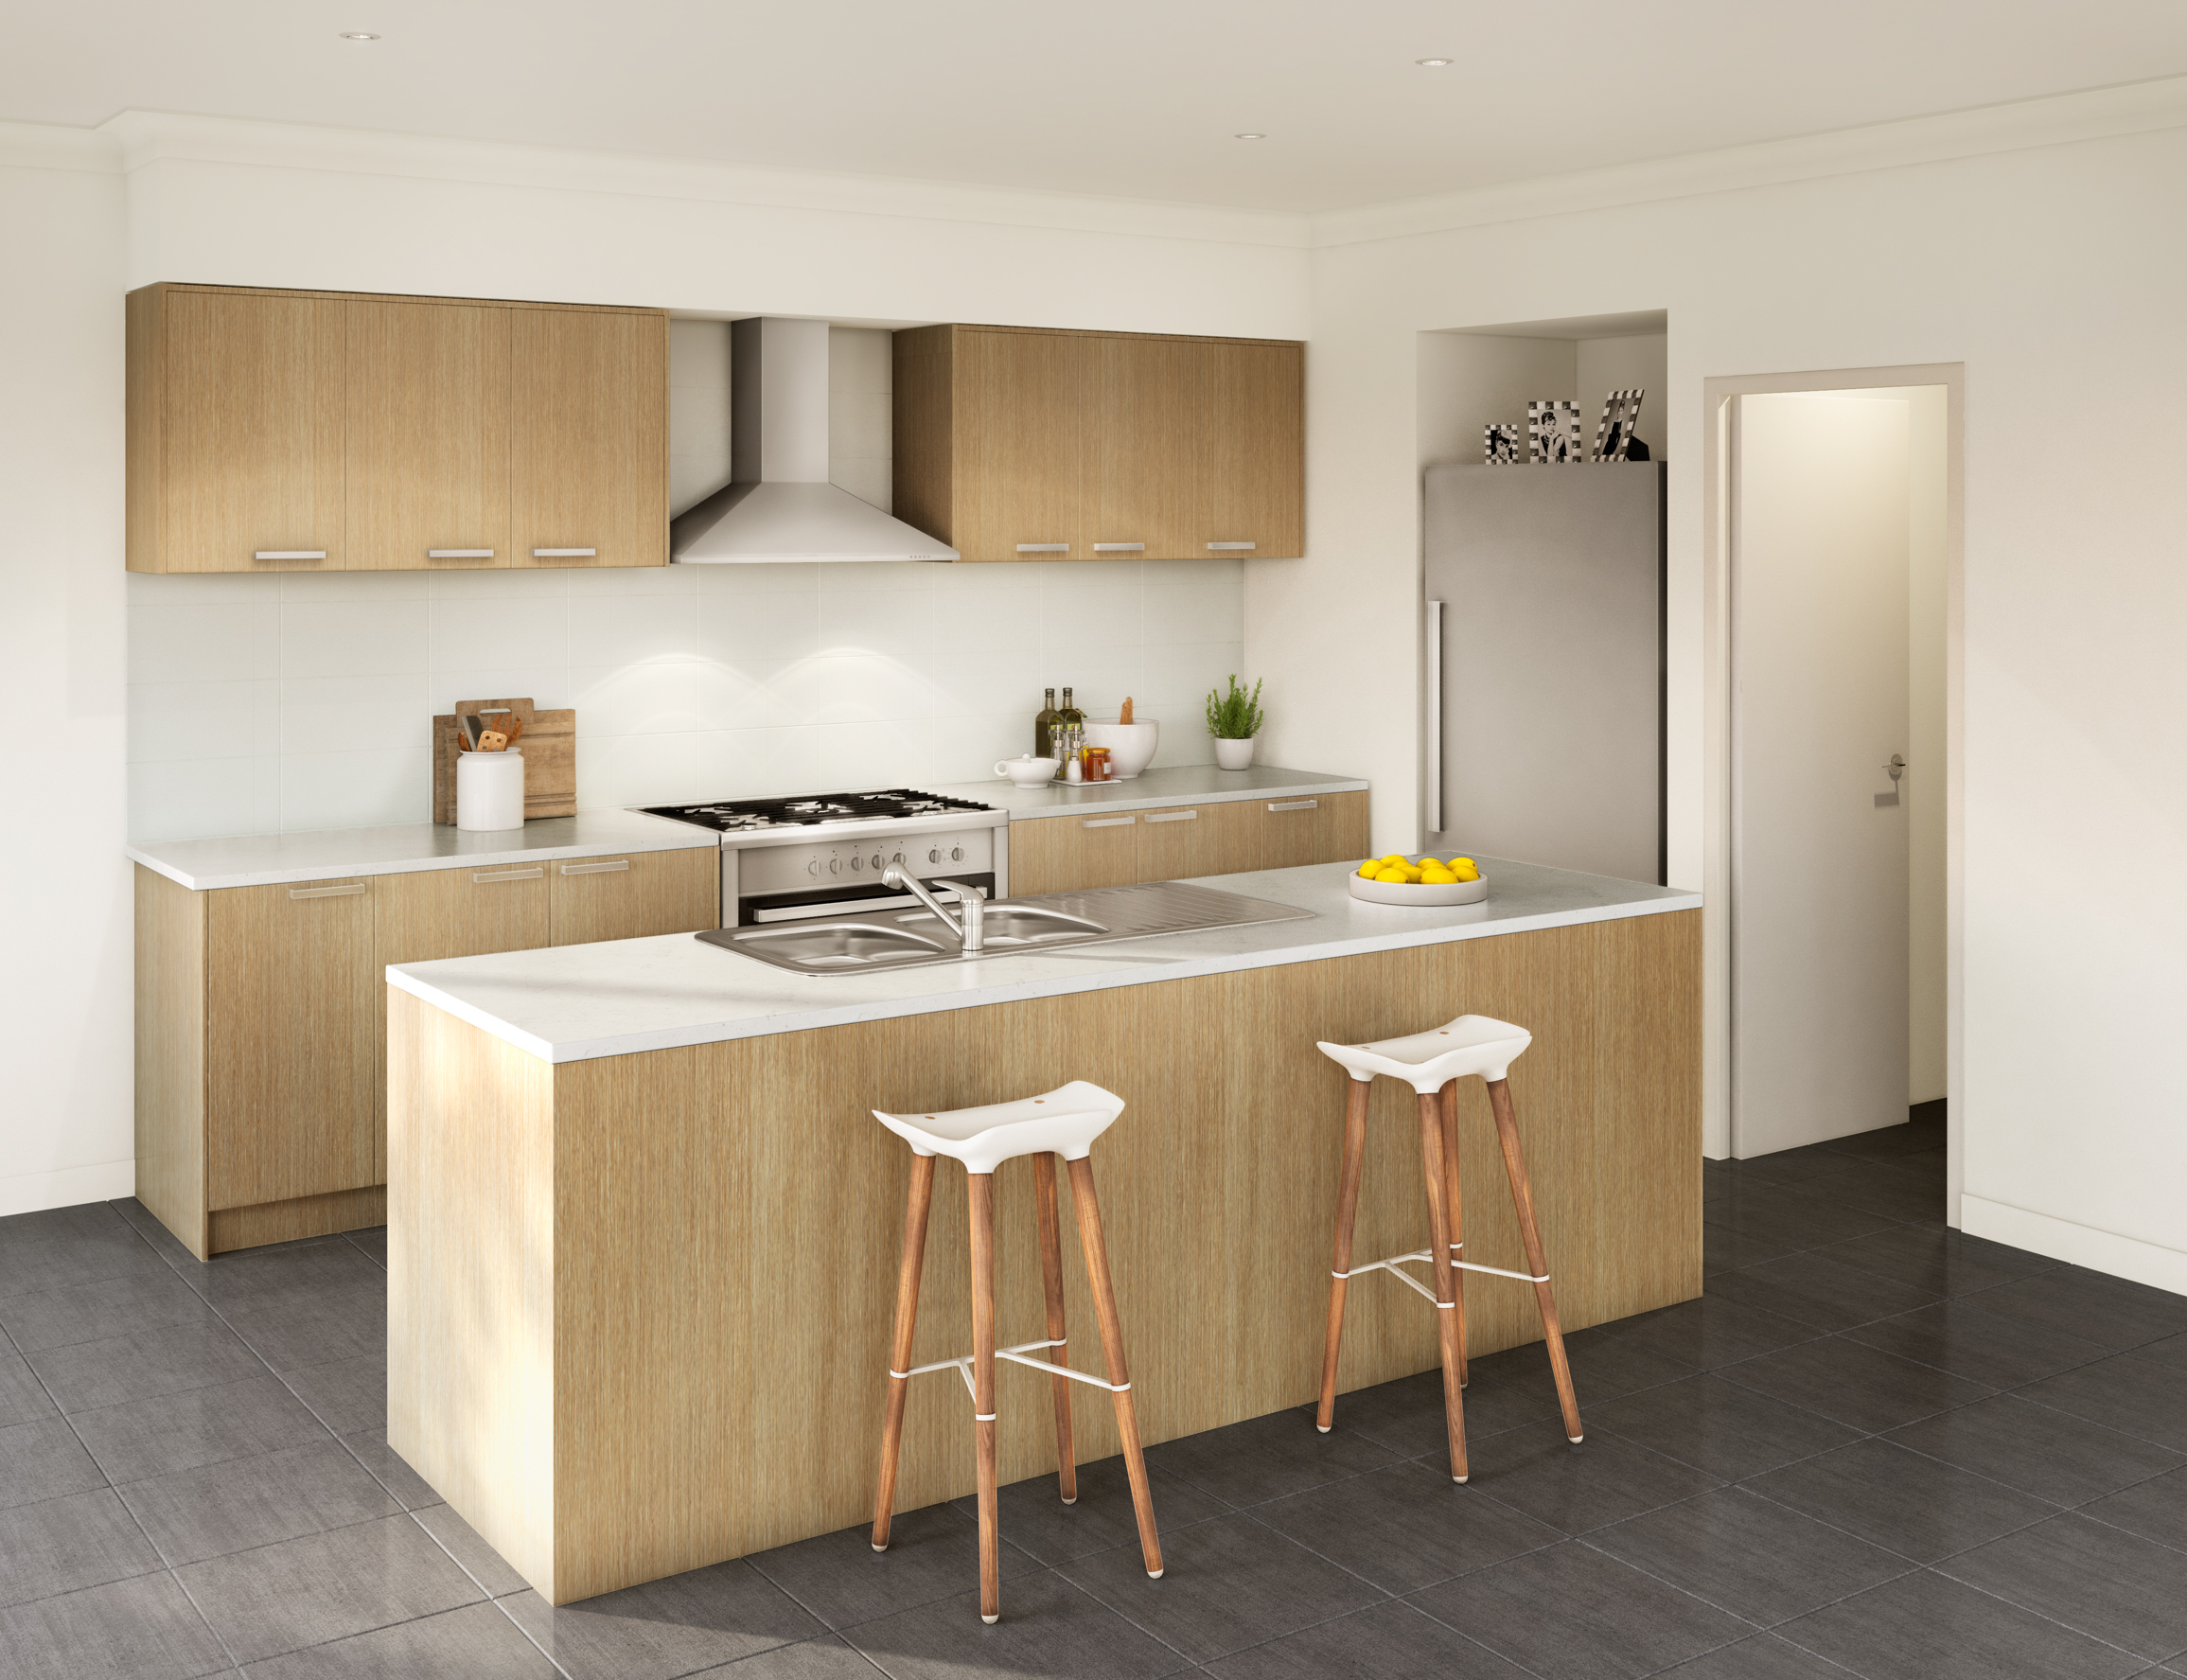 CAL600280_Essential_Interior_Kitchen_Scheme2.jpg